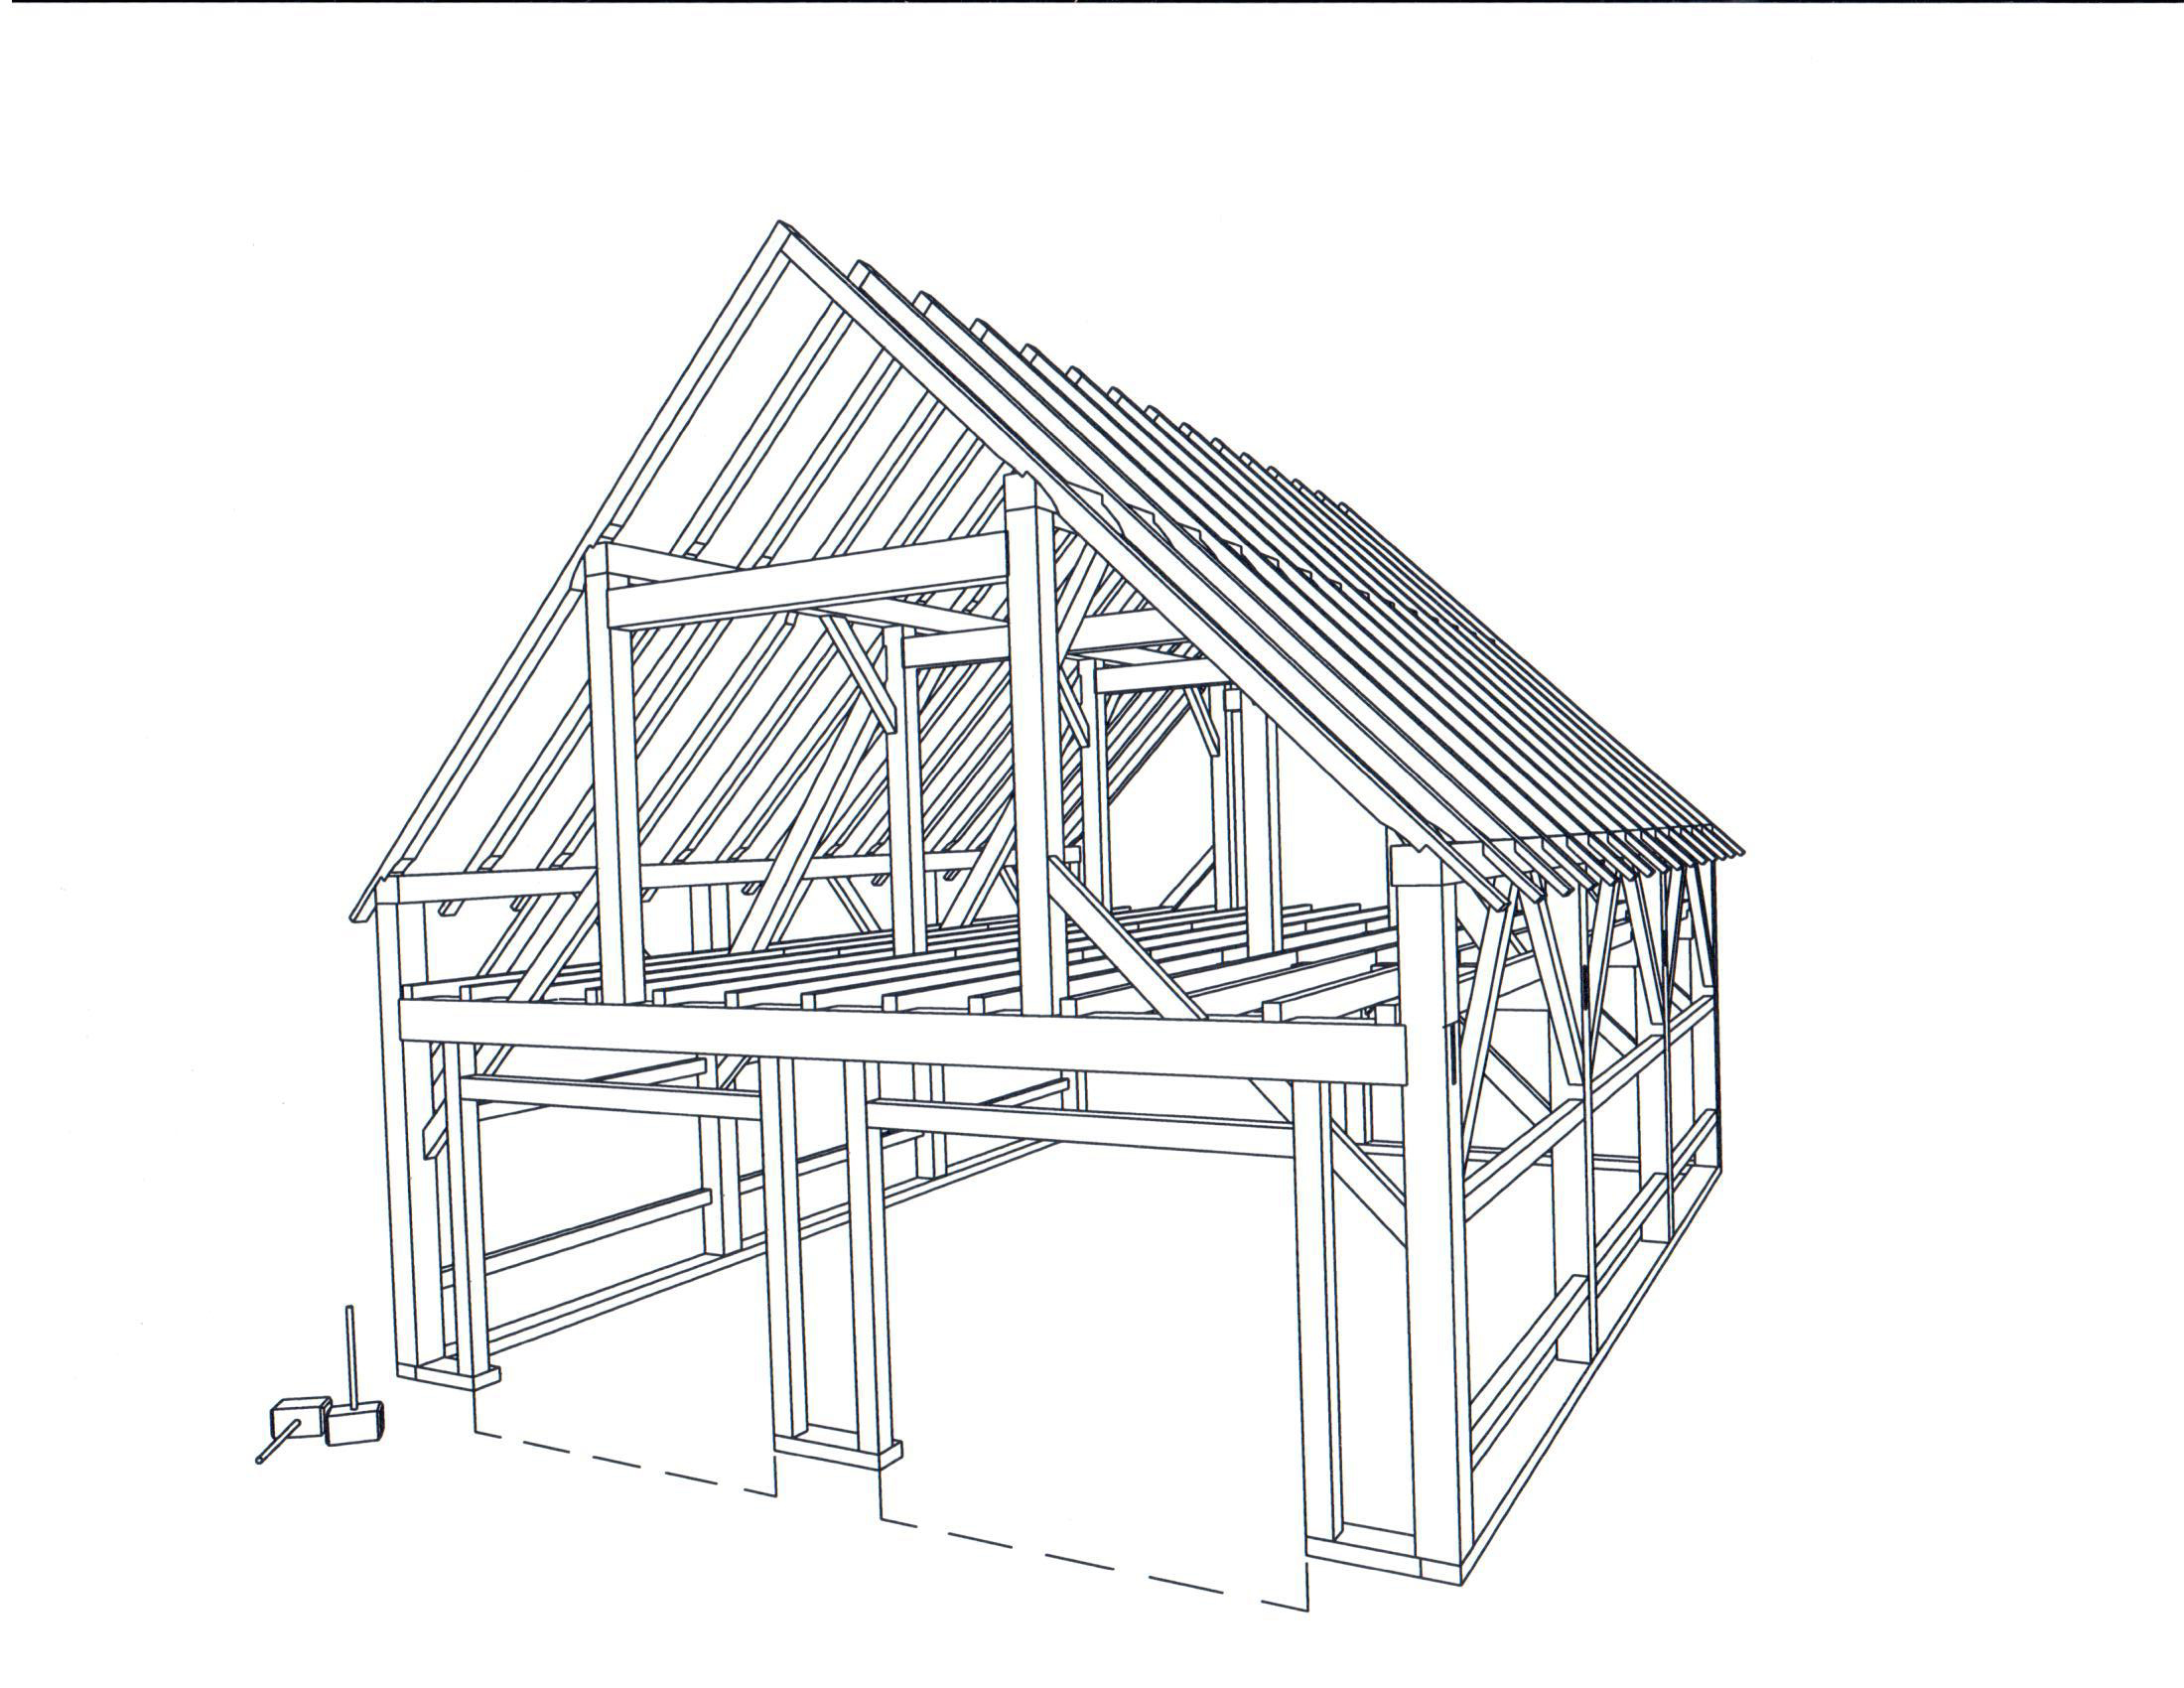 Design and building process brunswick timber frames inc for 26 x 36 garage